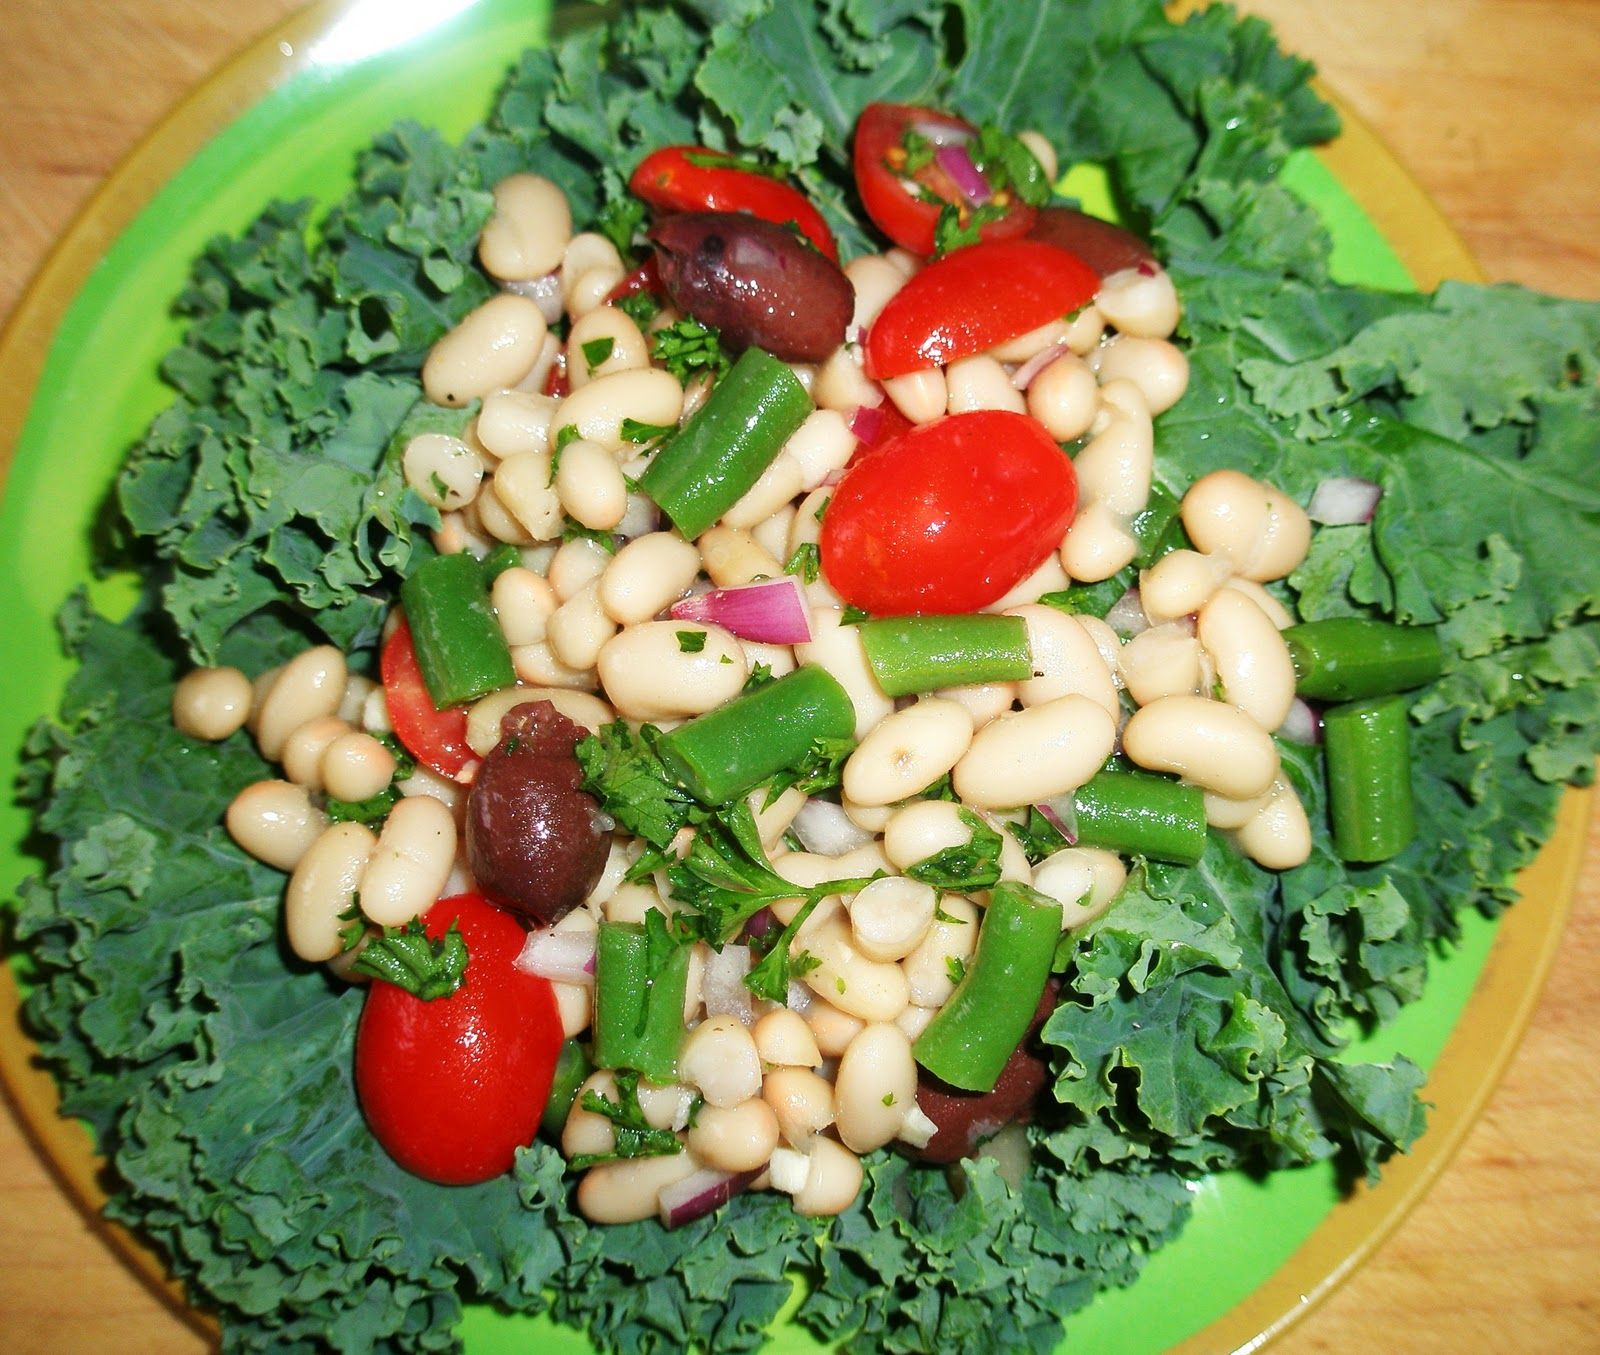 ... around a hearty salad like the provençal white bean salad page 81